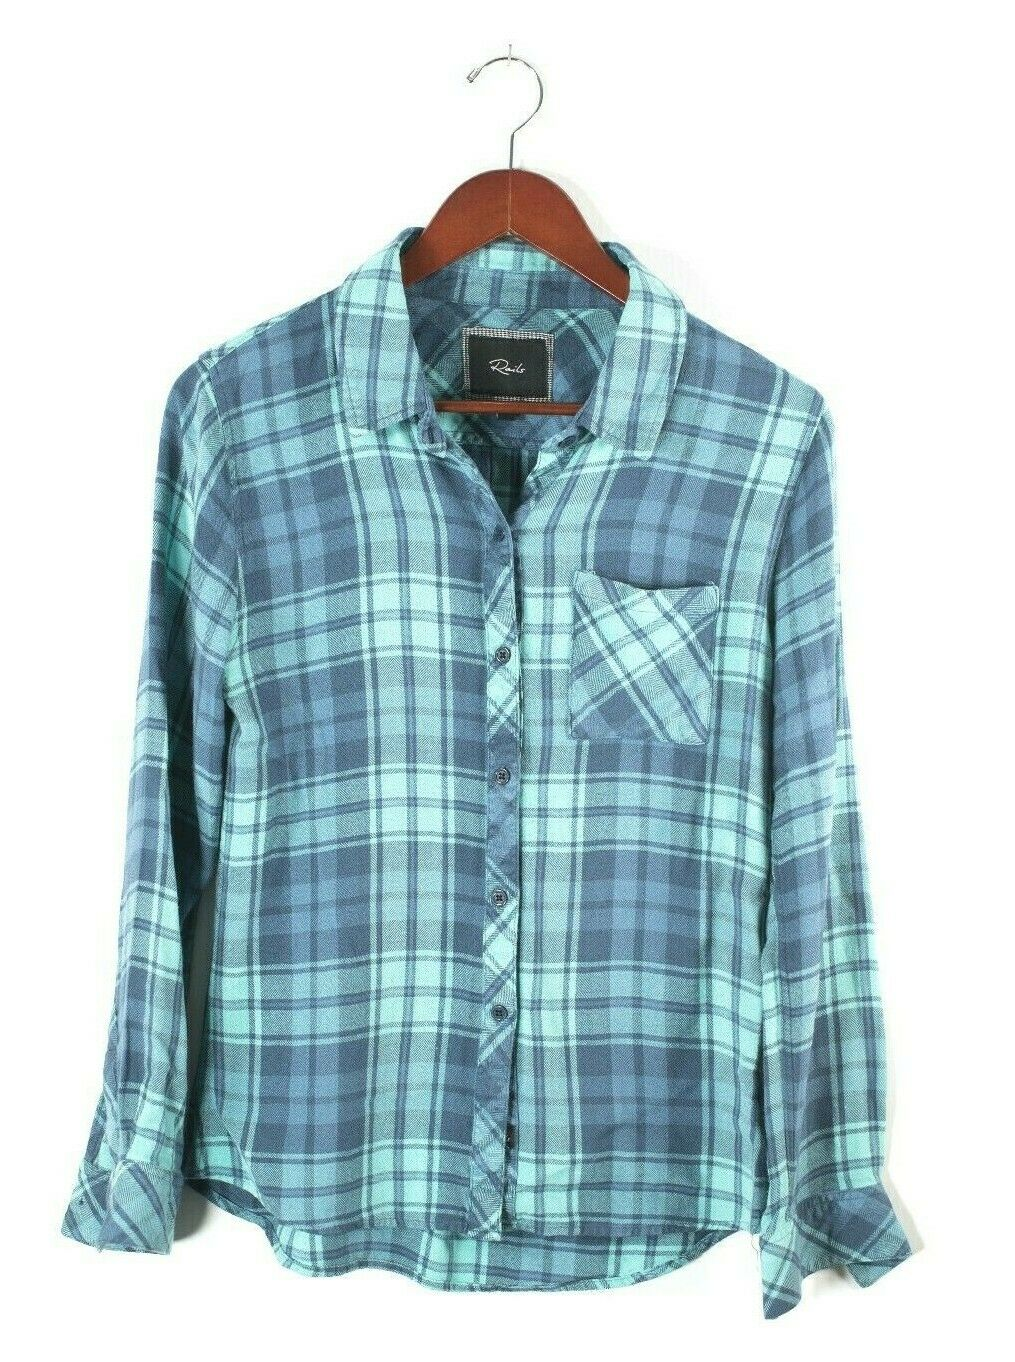 Rails Womens Small Blue Shirt Plaid Long Sleeve Button Down Hunter Blouse Top